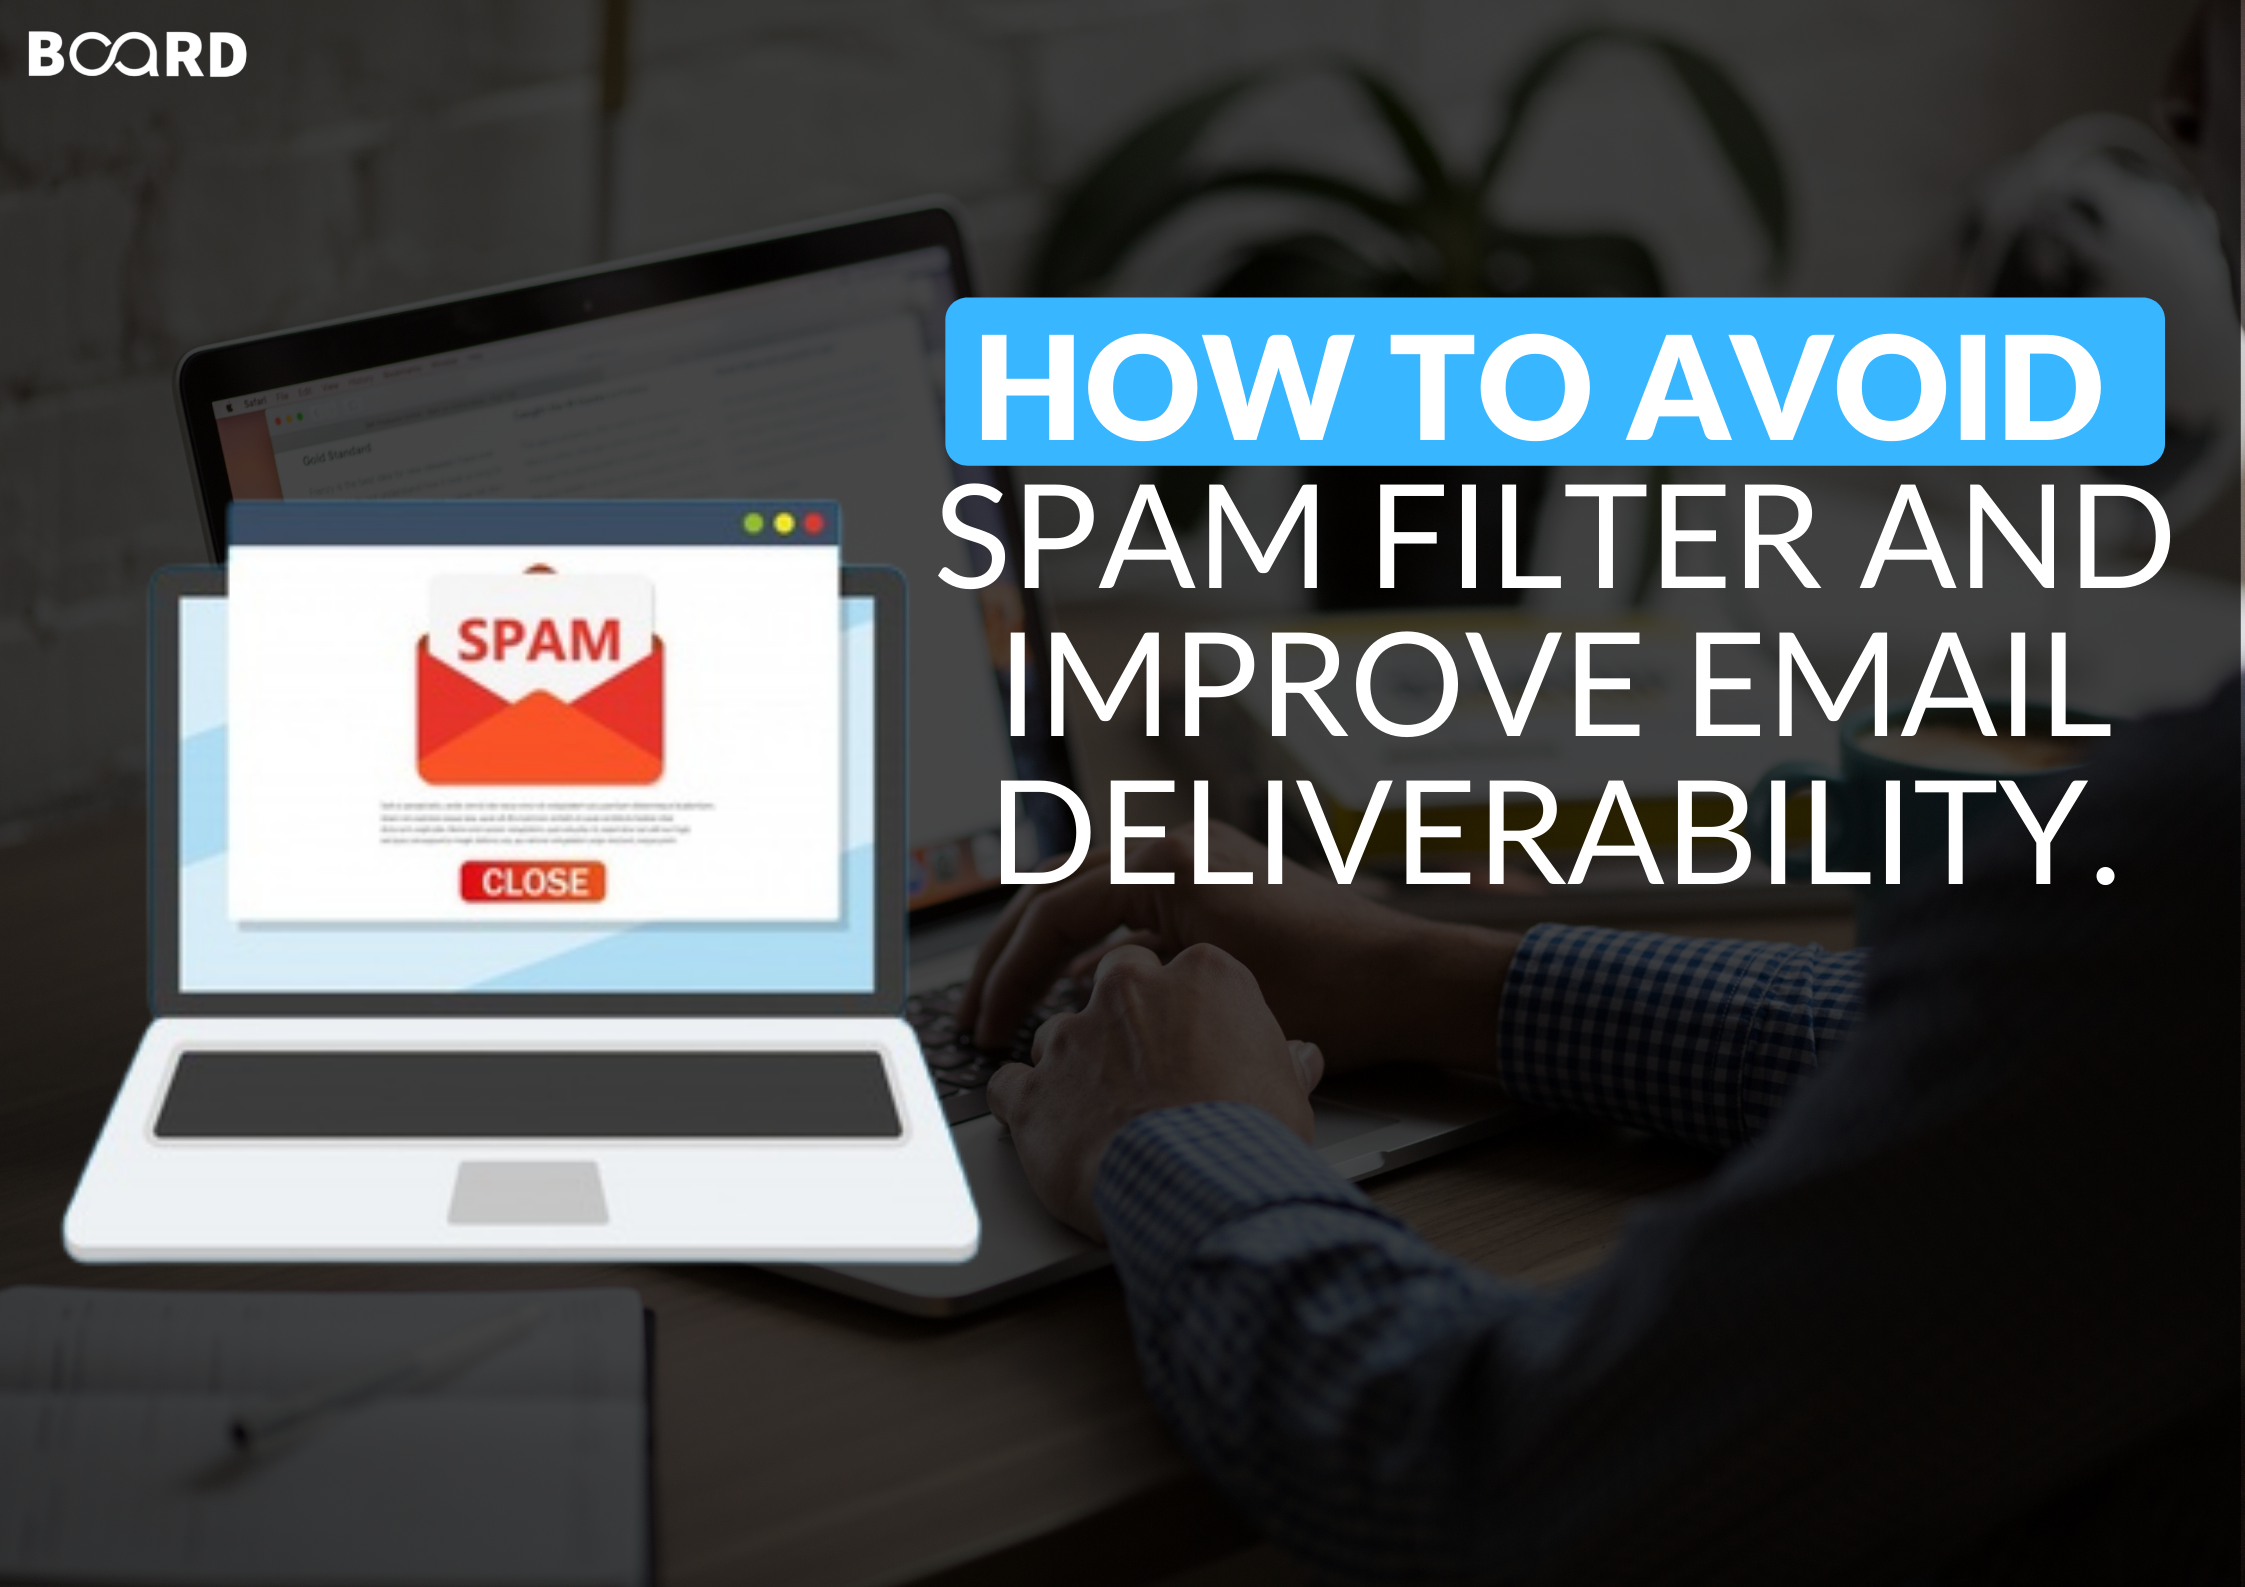 How to Avoid Spam Filter And Improve Email Deliverability.